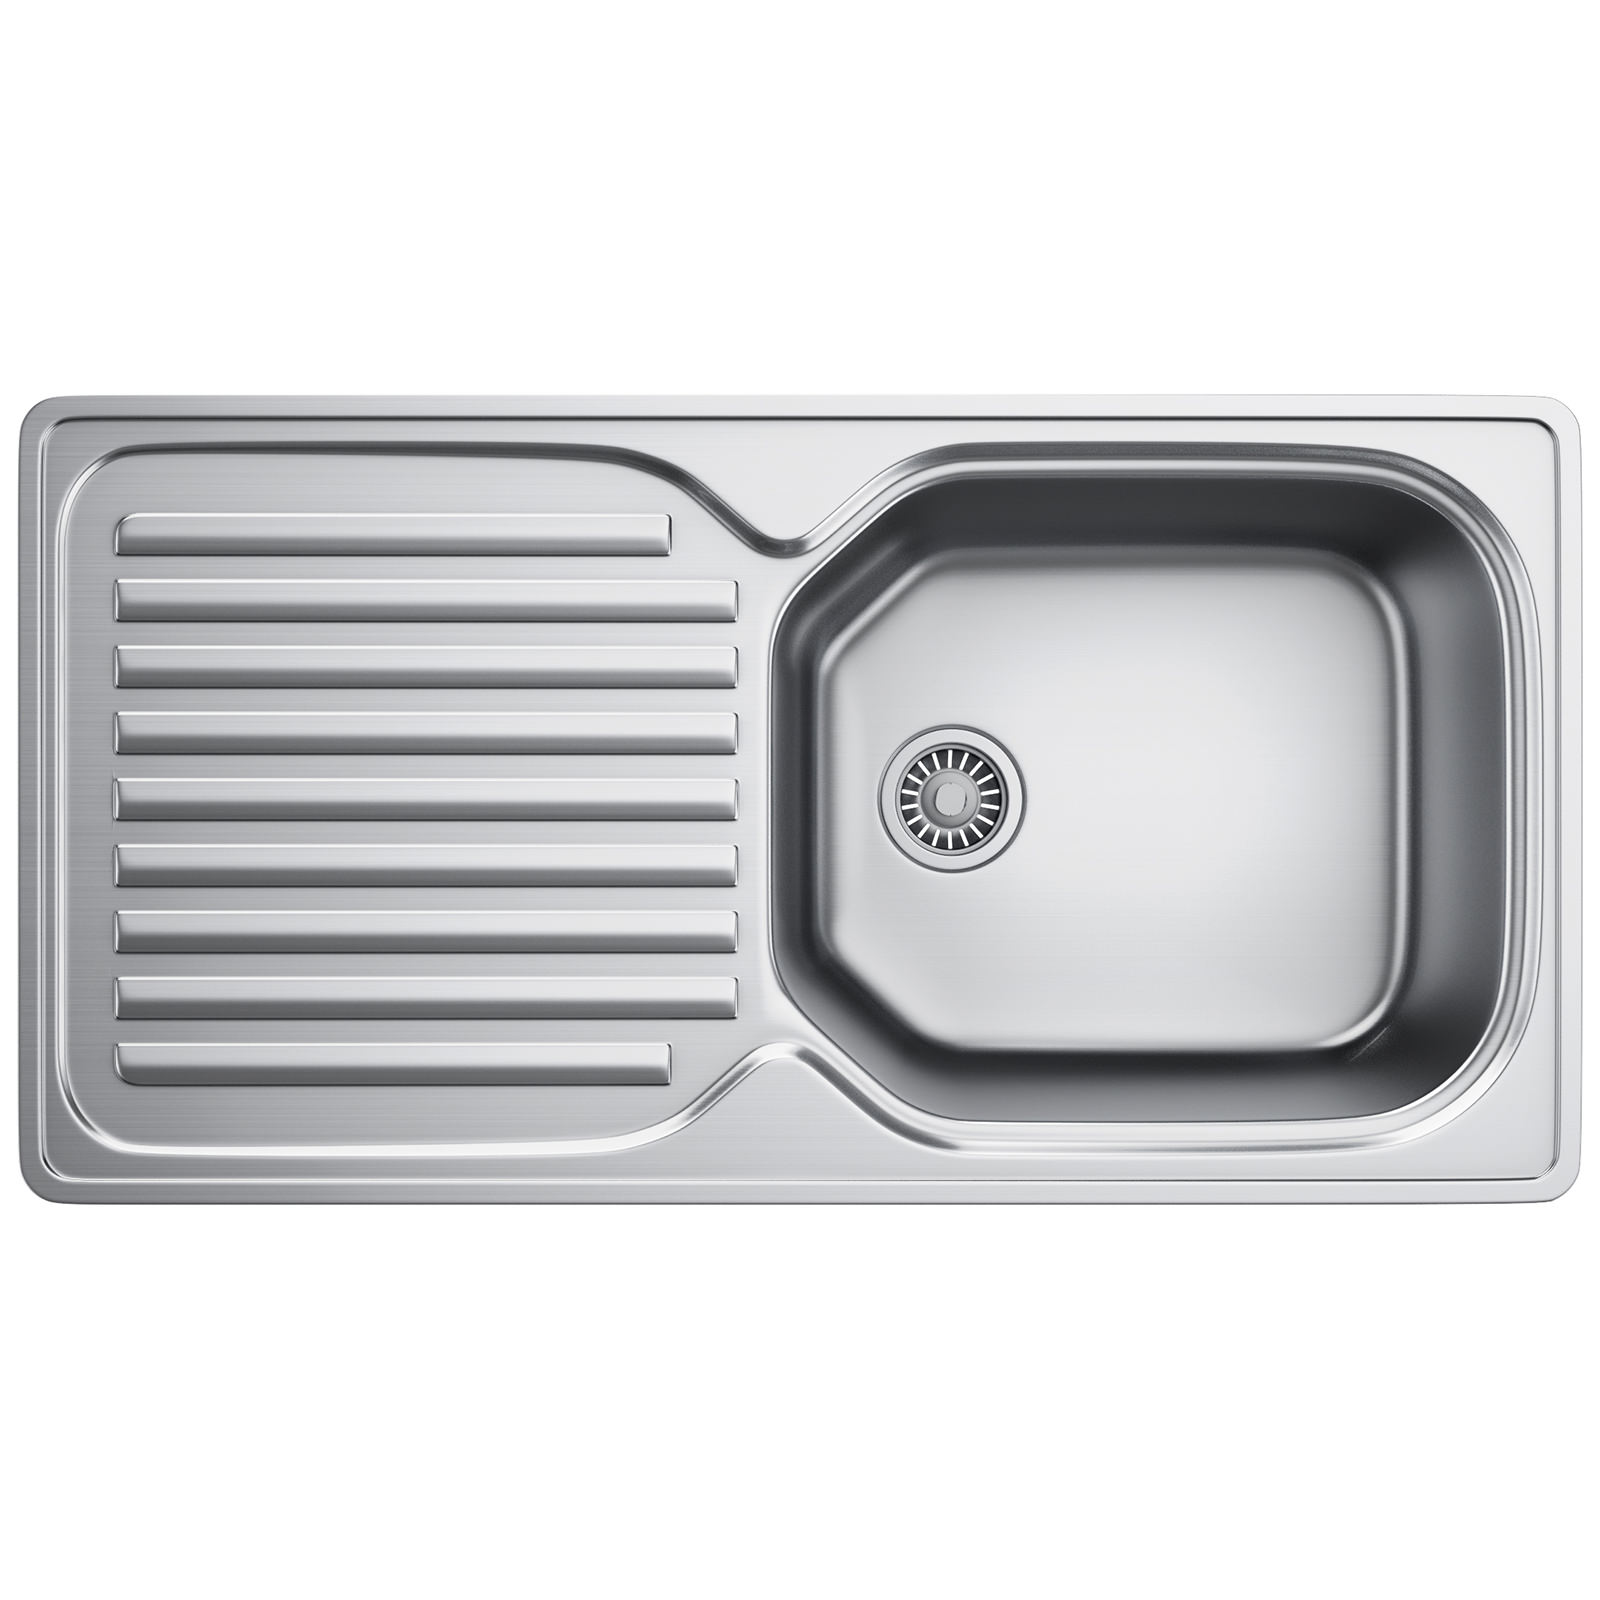 Franke Stainless Steel Sink : Franke Elba ELN 611 96 Stainless Steel 1.0 Bowl Kitchen Inset Sink ...